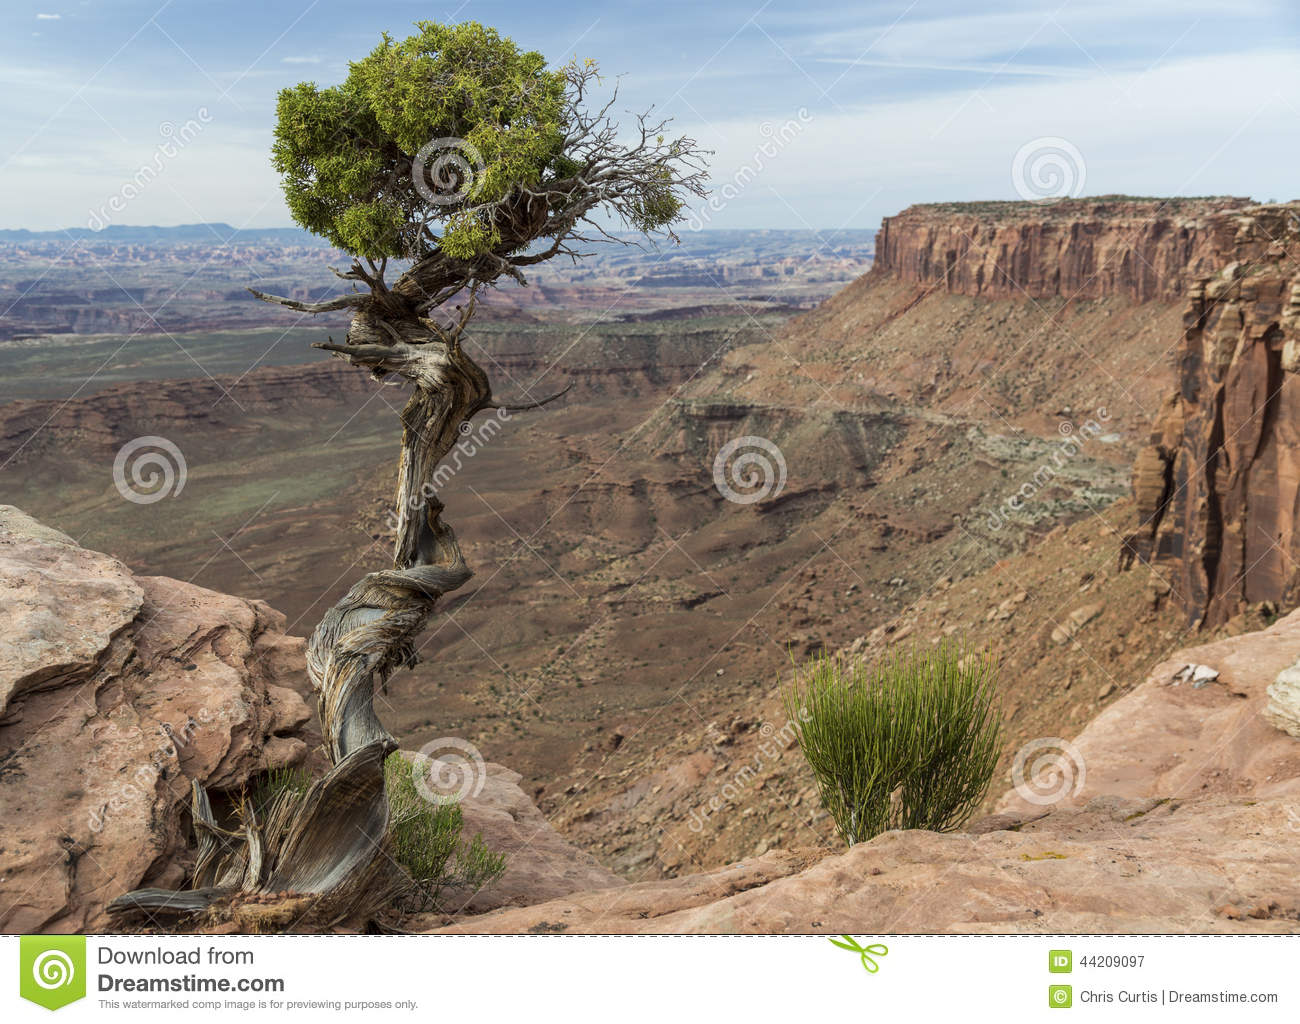 De Jeneverbessenboom en Canion van Utah in Canyonlands in Utah